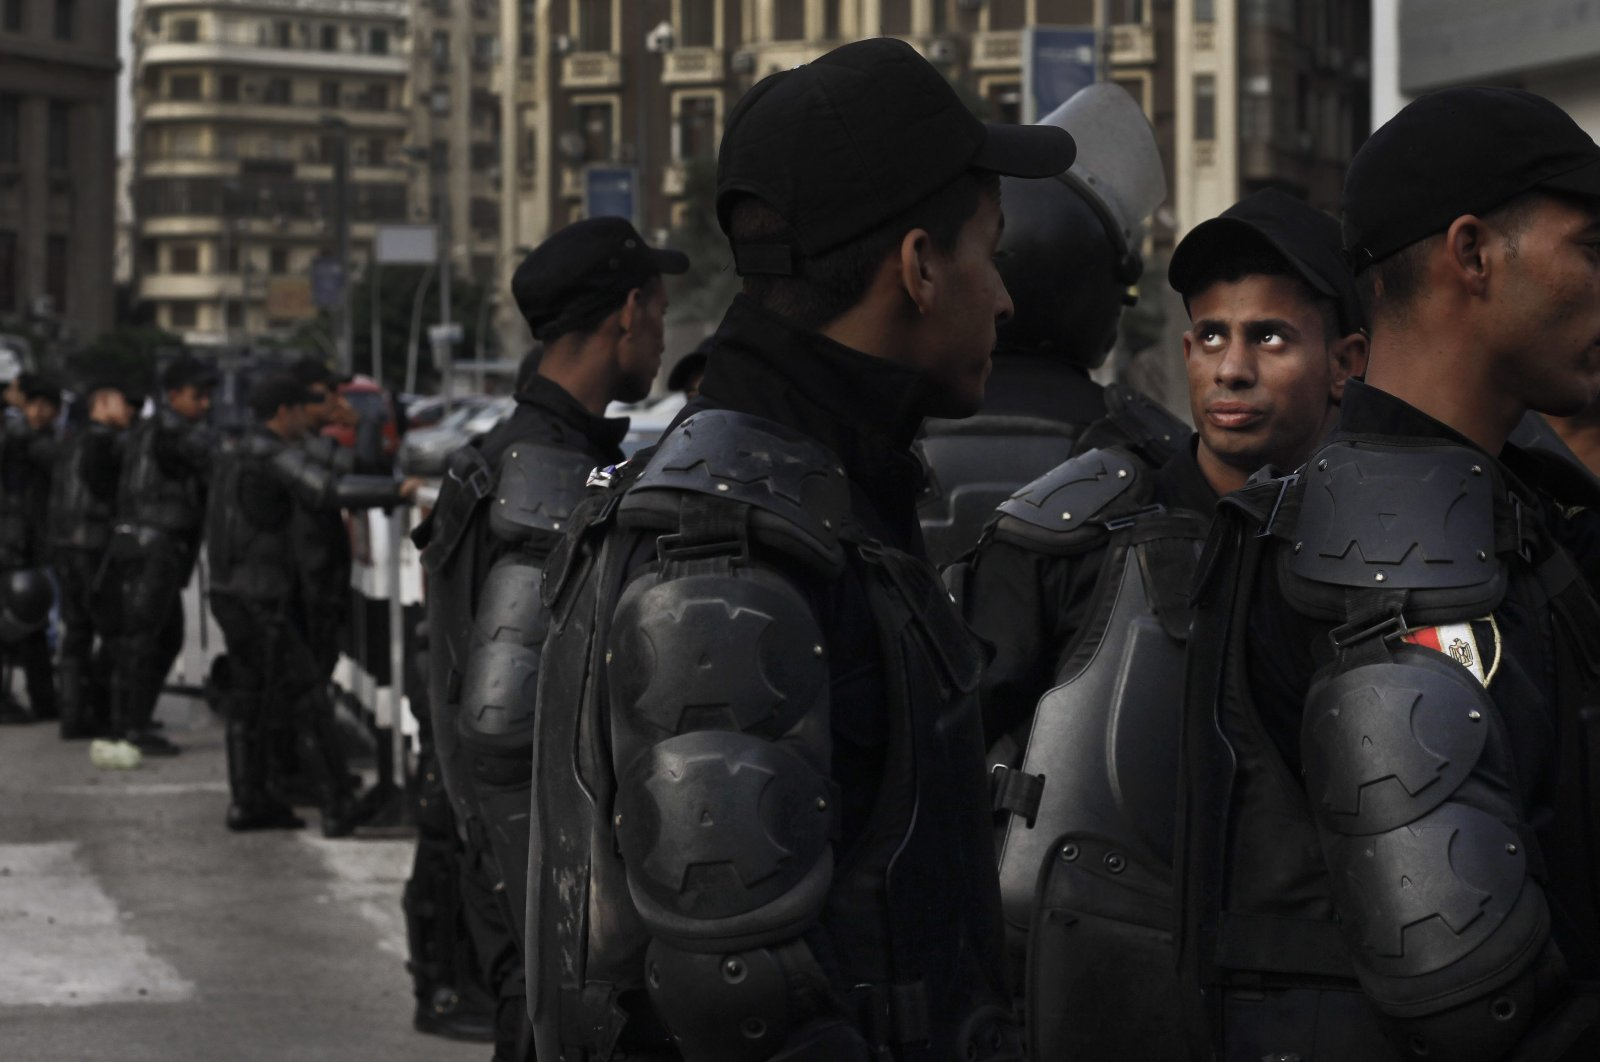 Egyptian security forces close off a street near the Press Syndicate as journalist's protest, Cairo, May 3, 2016. (AP Photo)